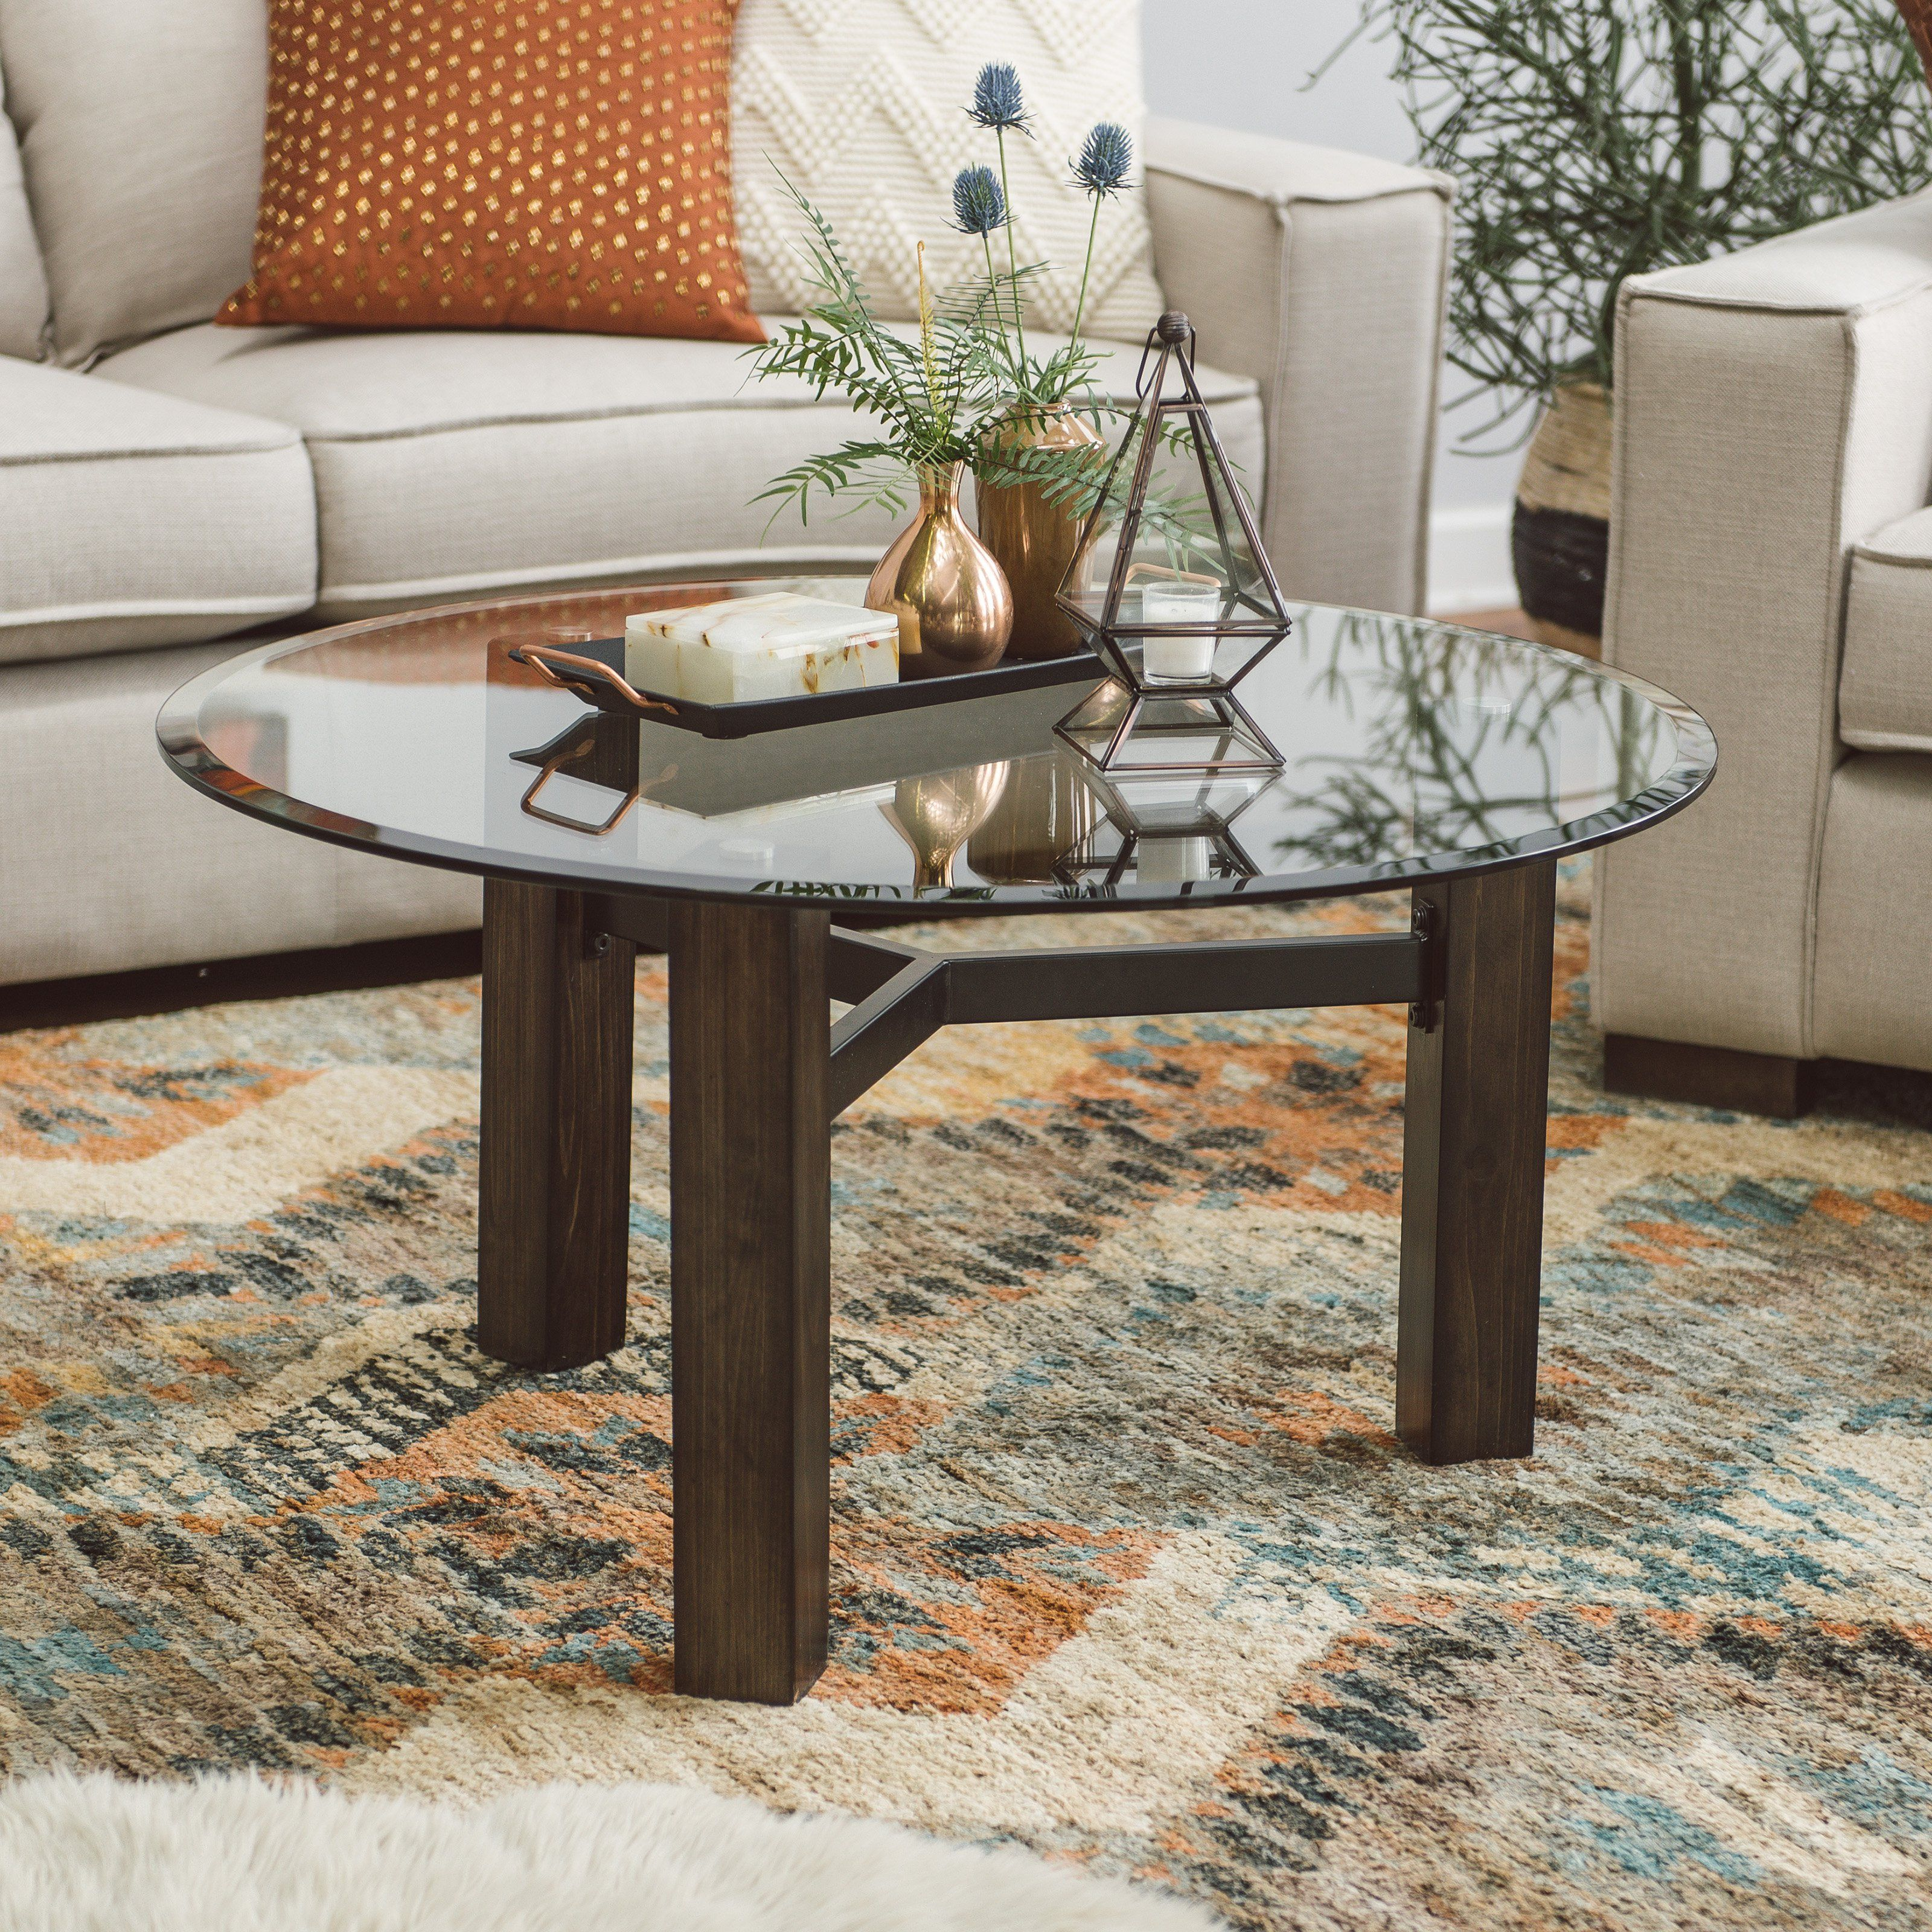 11+ Wood and glass coffee table set ideas in 2021